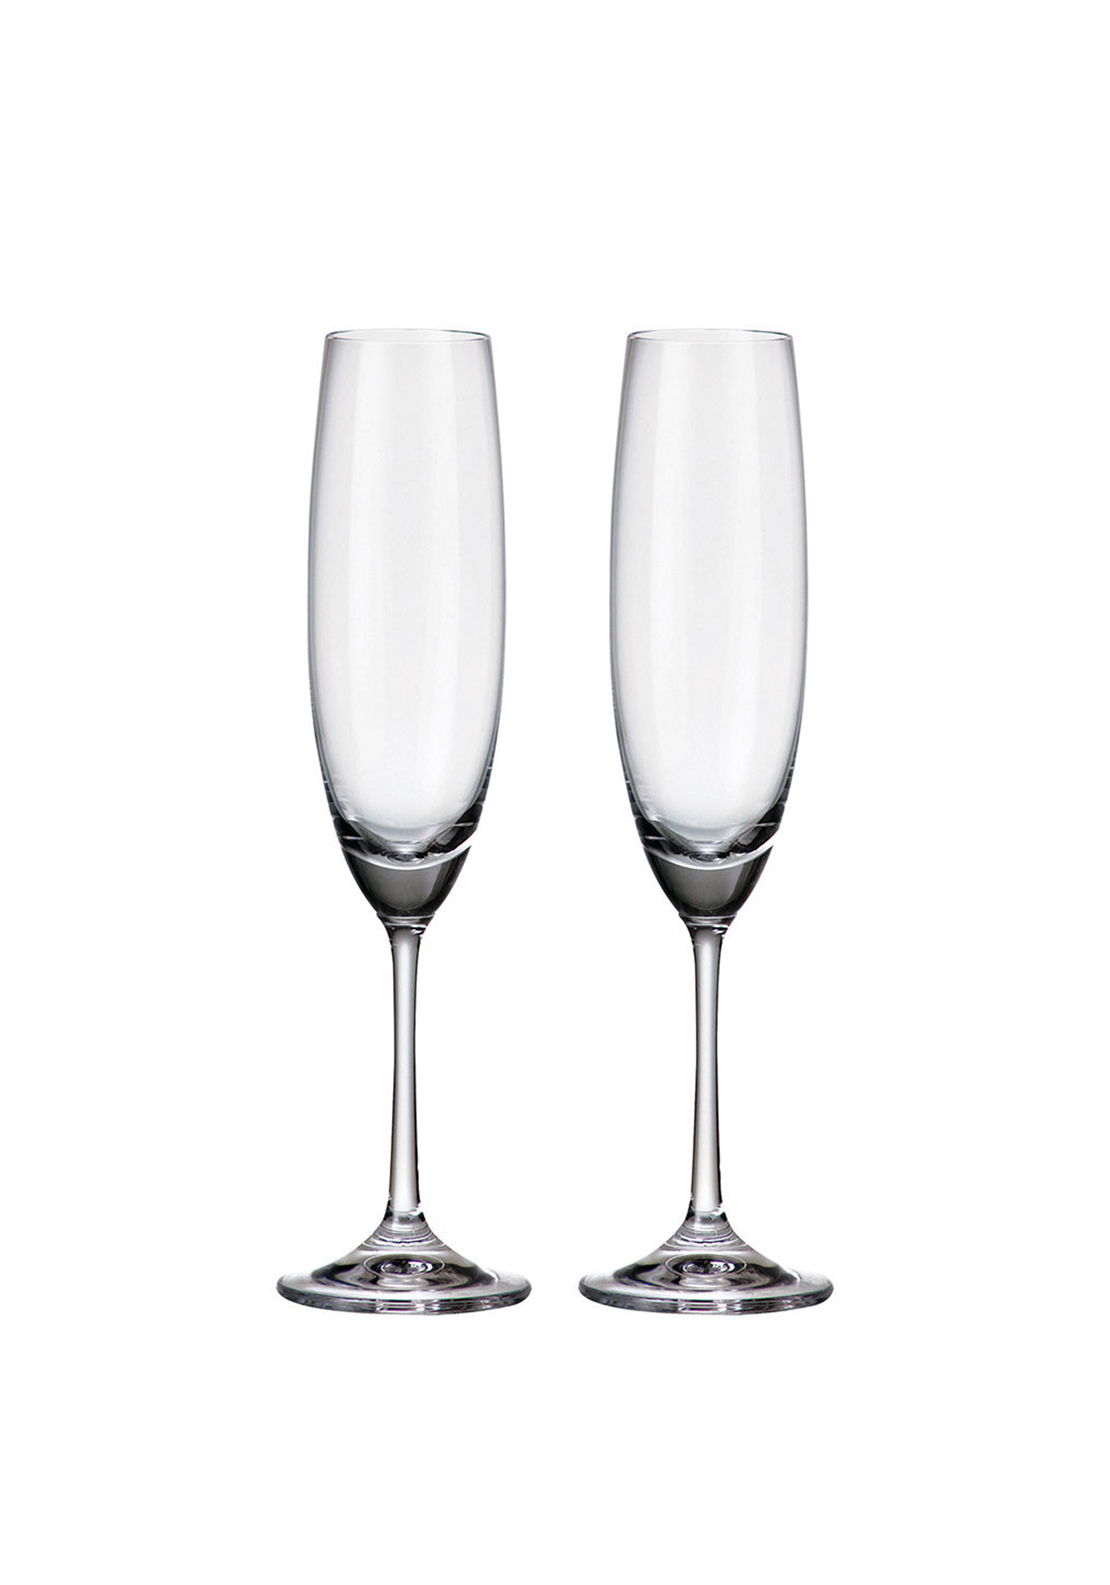 Tipperary Crystal Connoisseur Set of 2 Champaign Flutes 250ml Gift Box